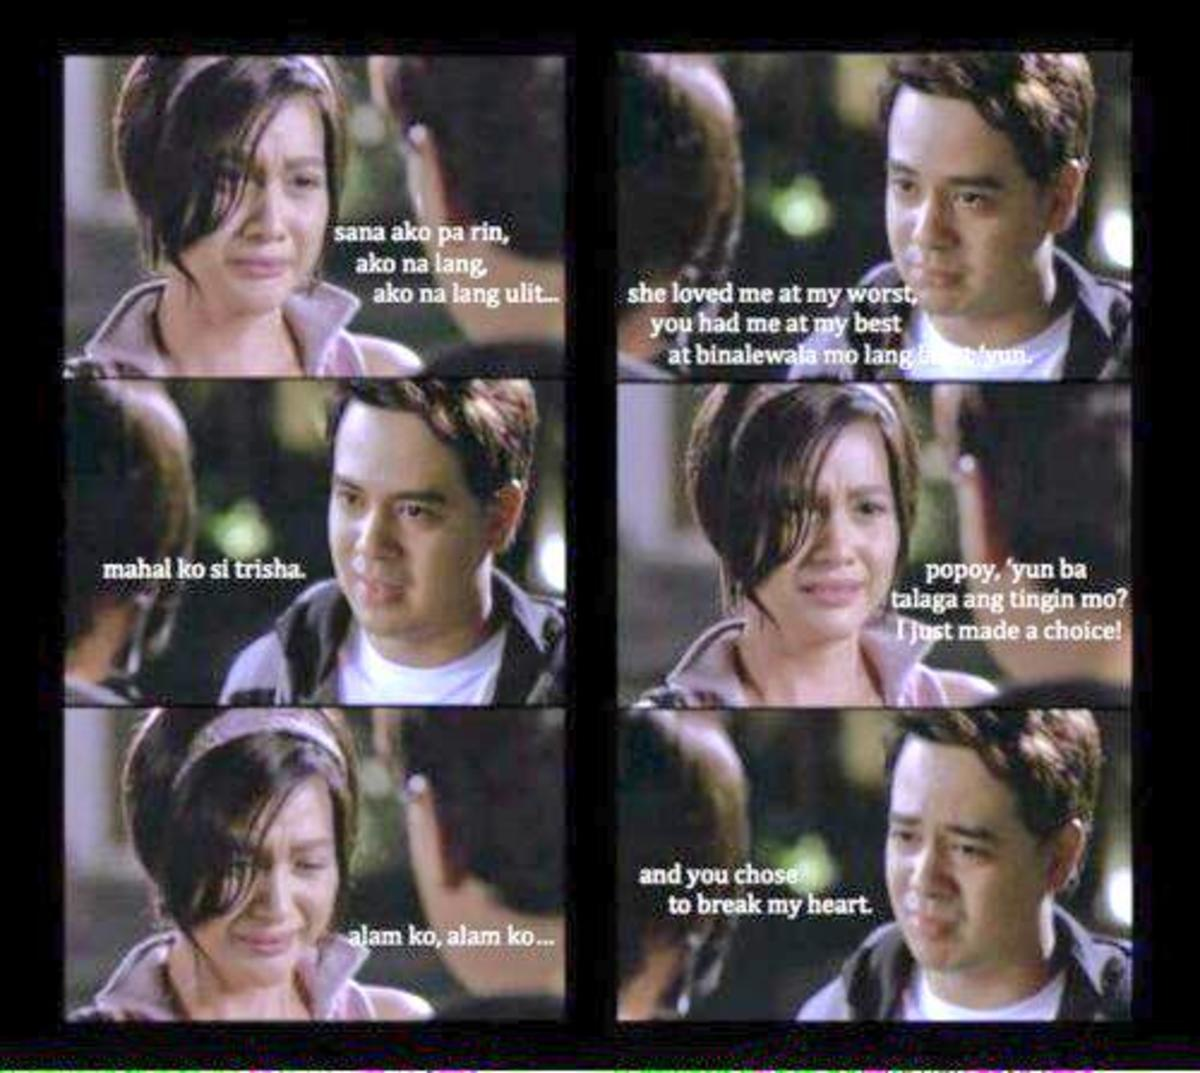 30 Greatest Quotes And Hugot Lines From Filipino Movies ...